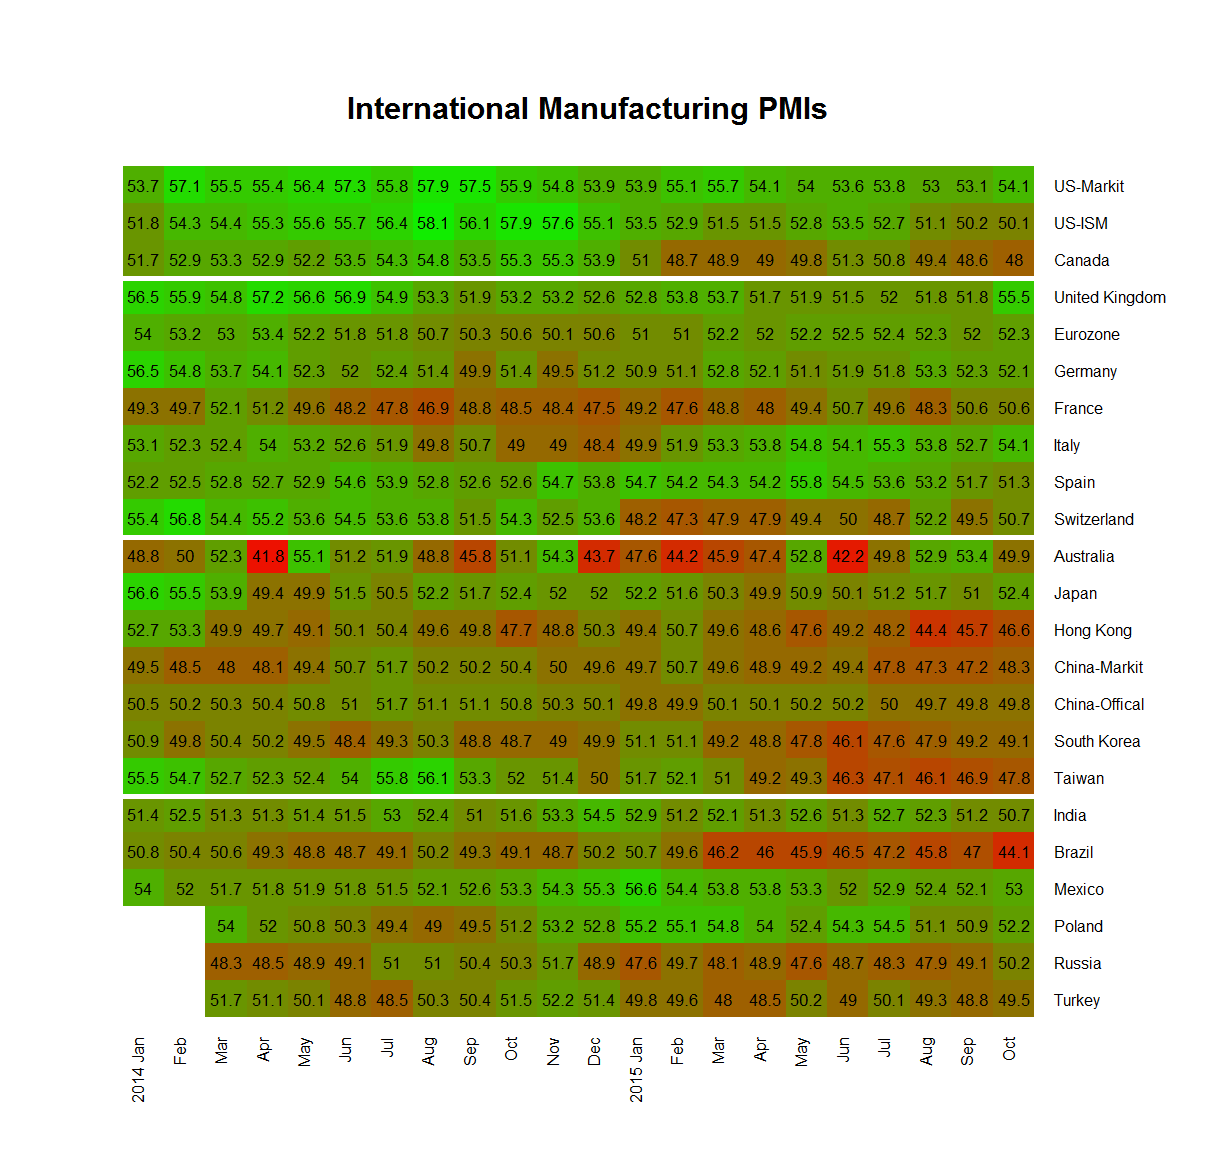 International PMI heatmap